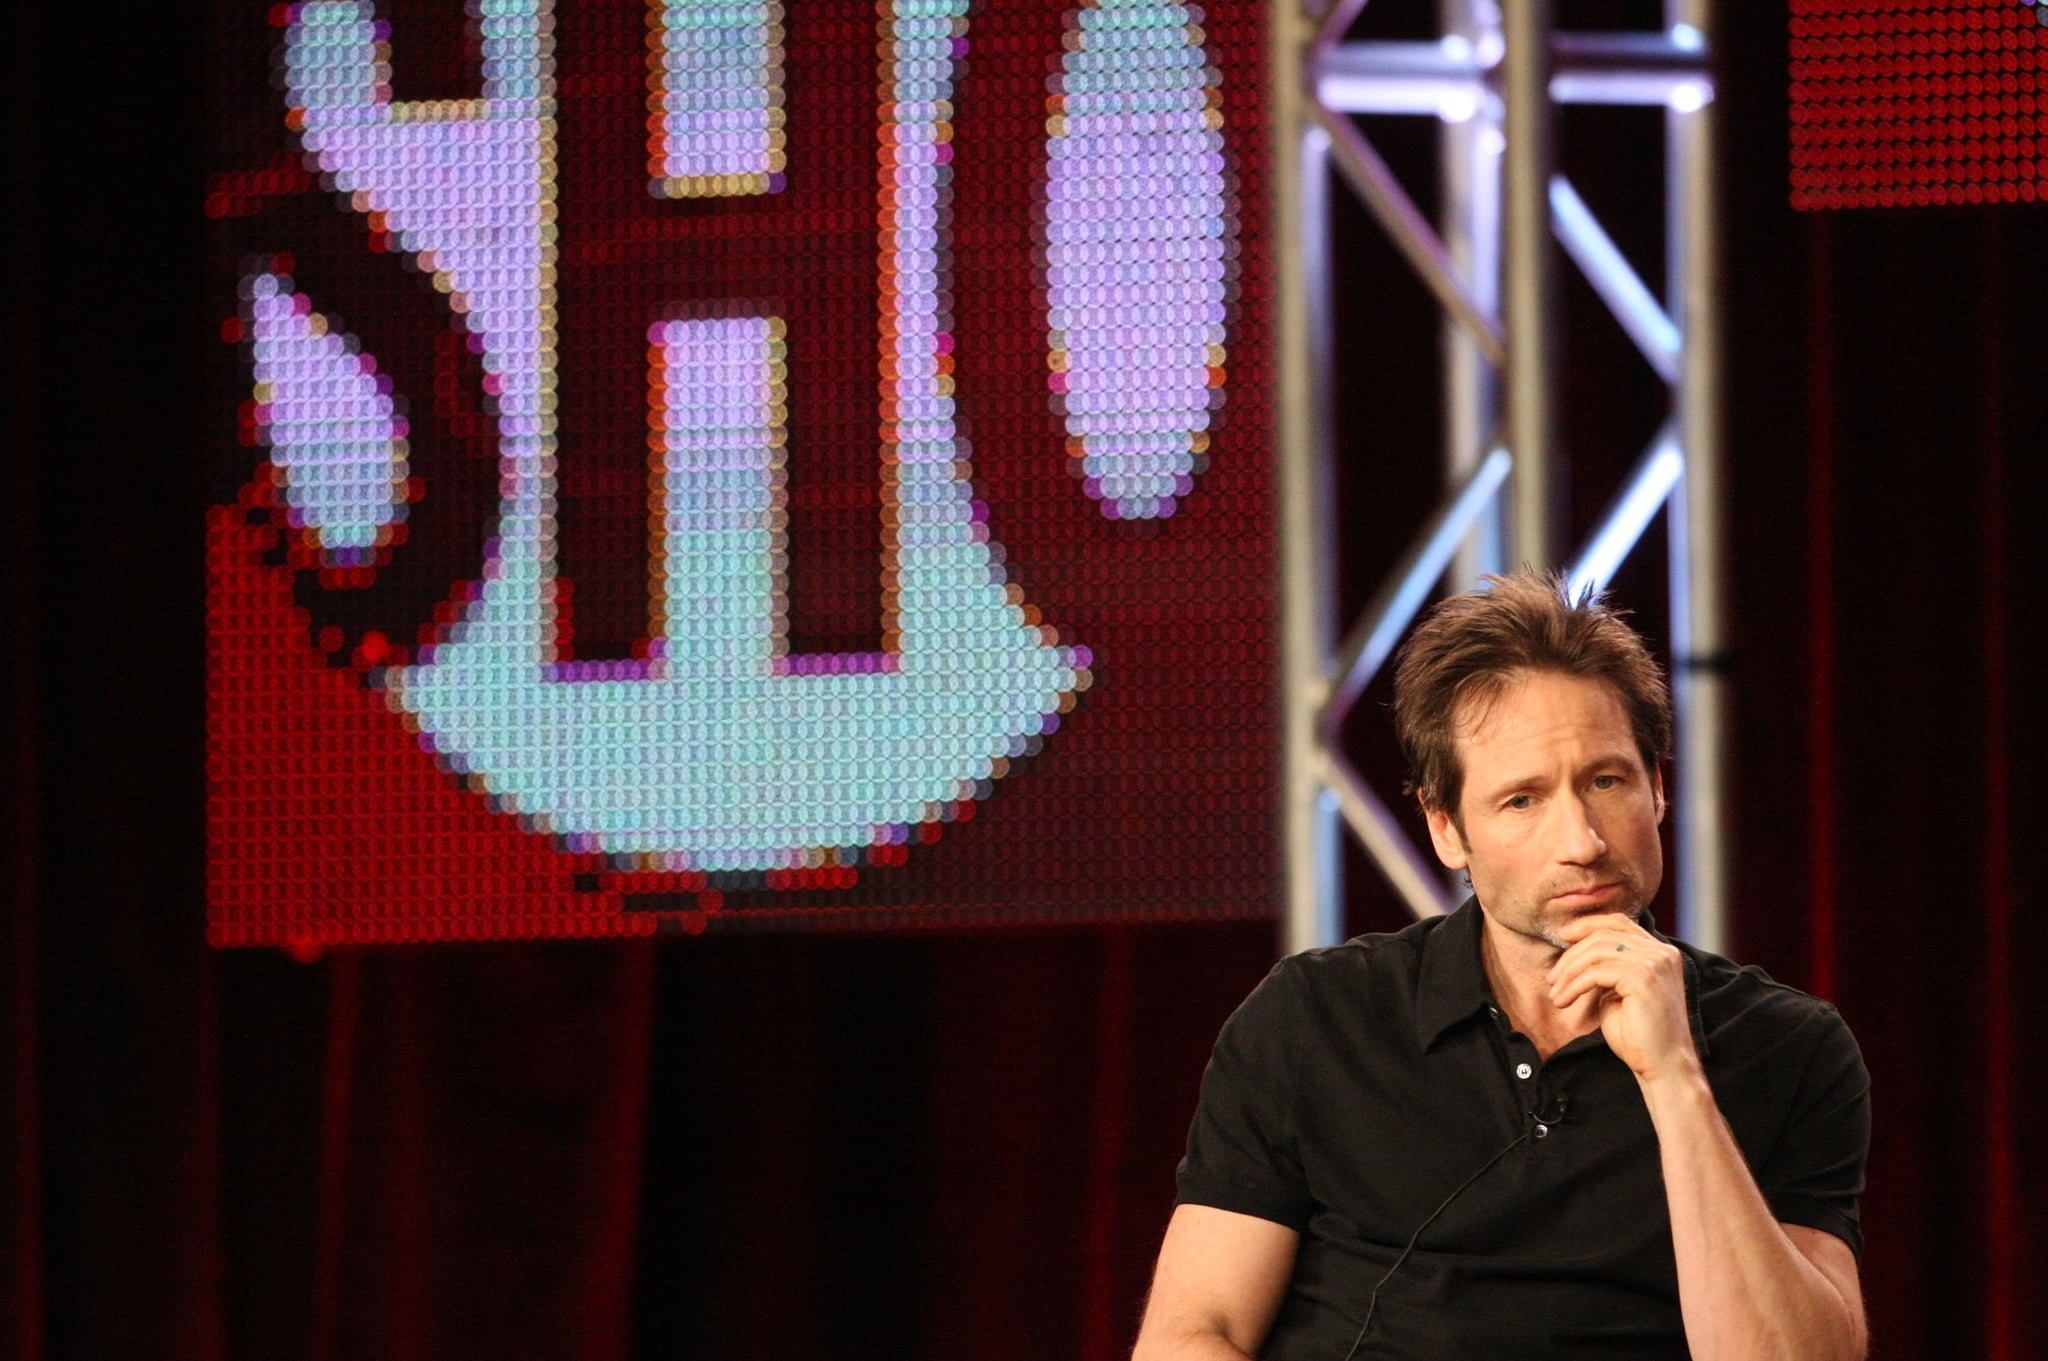 Californication Winter TCA Funny Panel Quotes From David